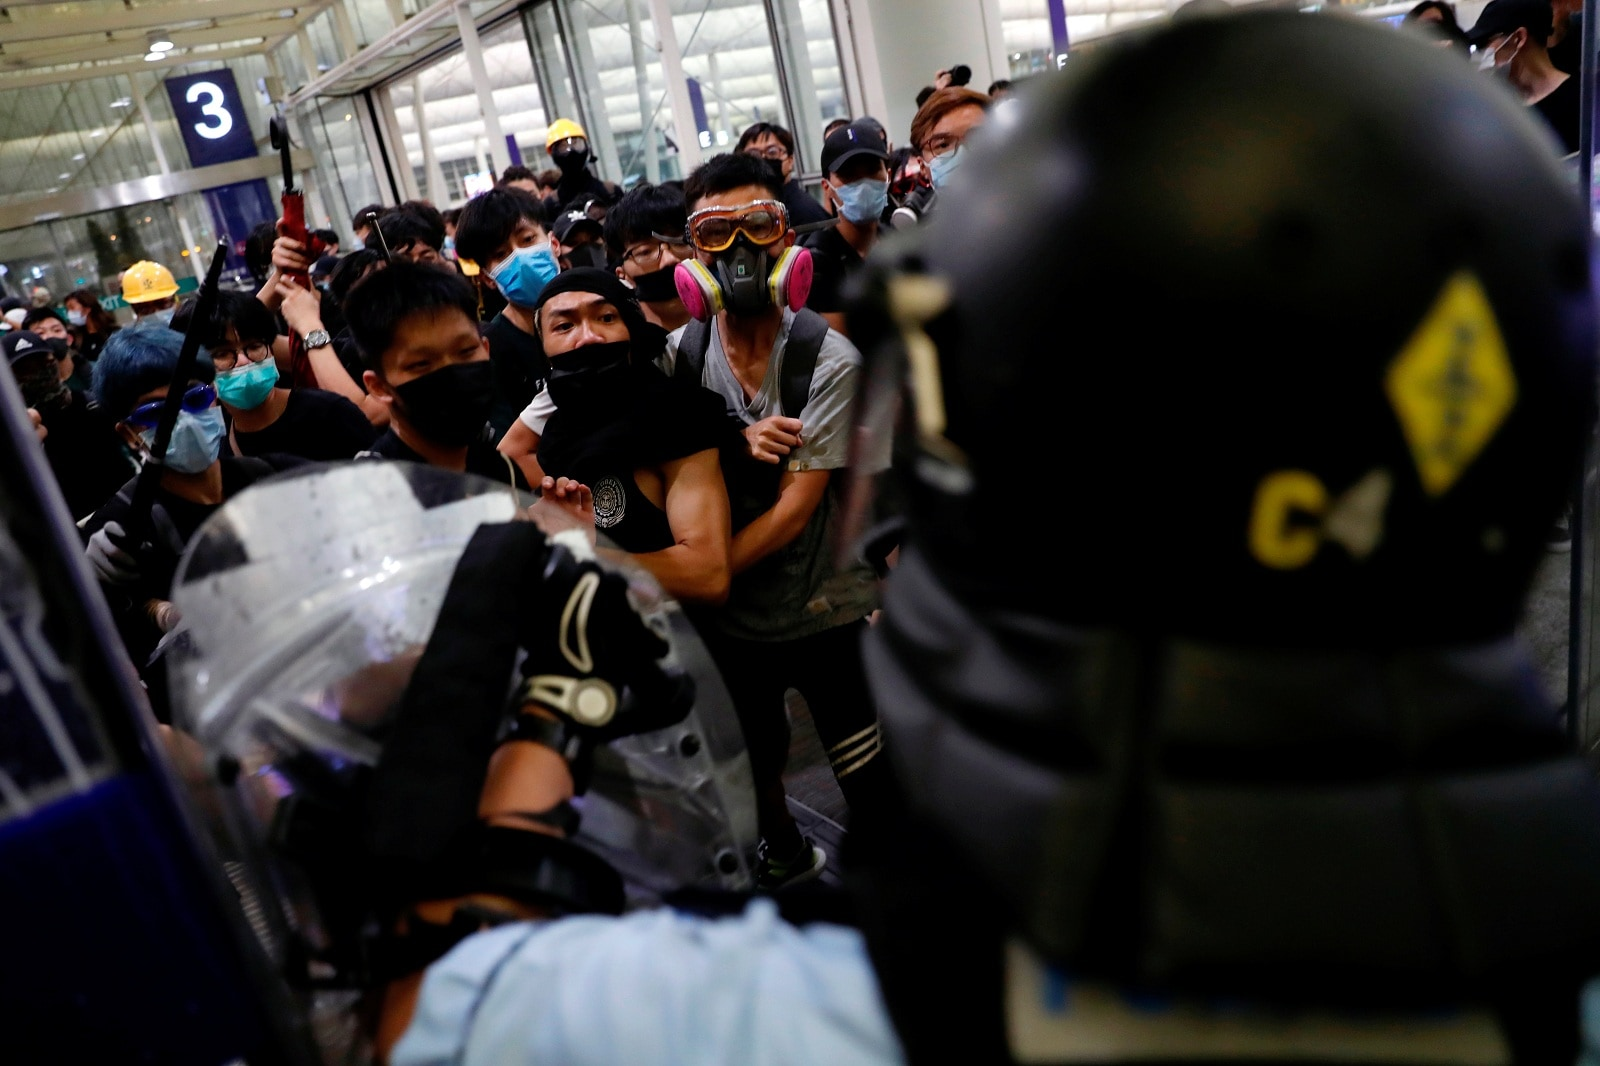 Anti-extradition bill protesters face riot police during a mass demonstration at the Hong Kong international airport, in Hong Kong, China, August 13, 2019. REUTERS/Tyrone Siu